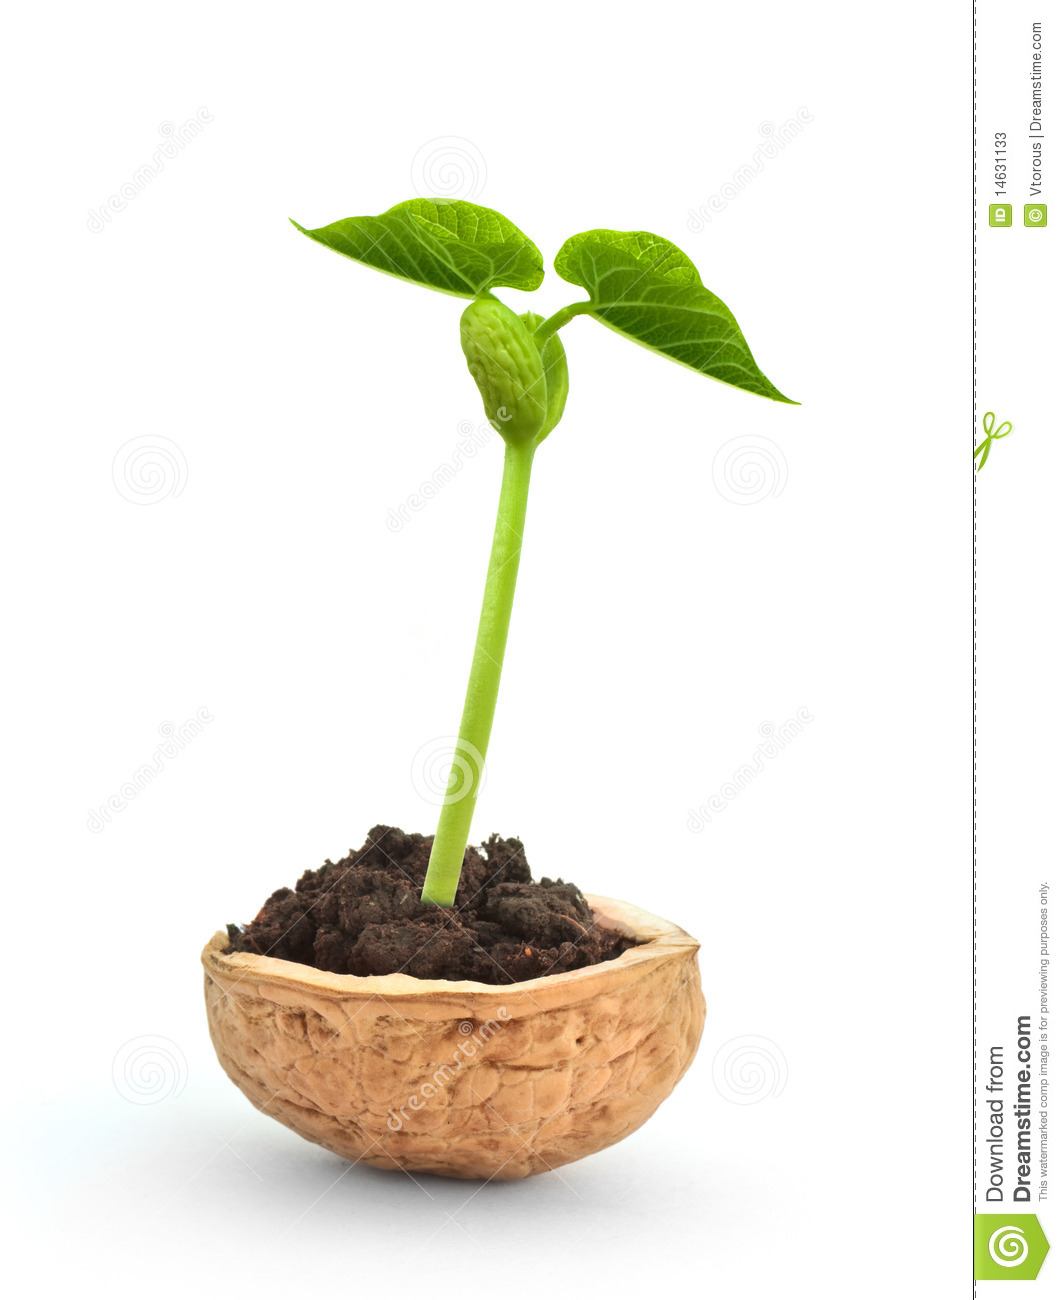 small plant in a nutshell stock photos image 14631133 125 cafeteria plan website of taxodace